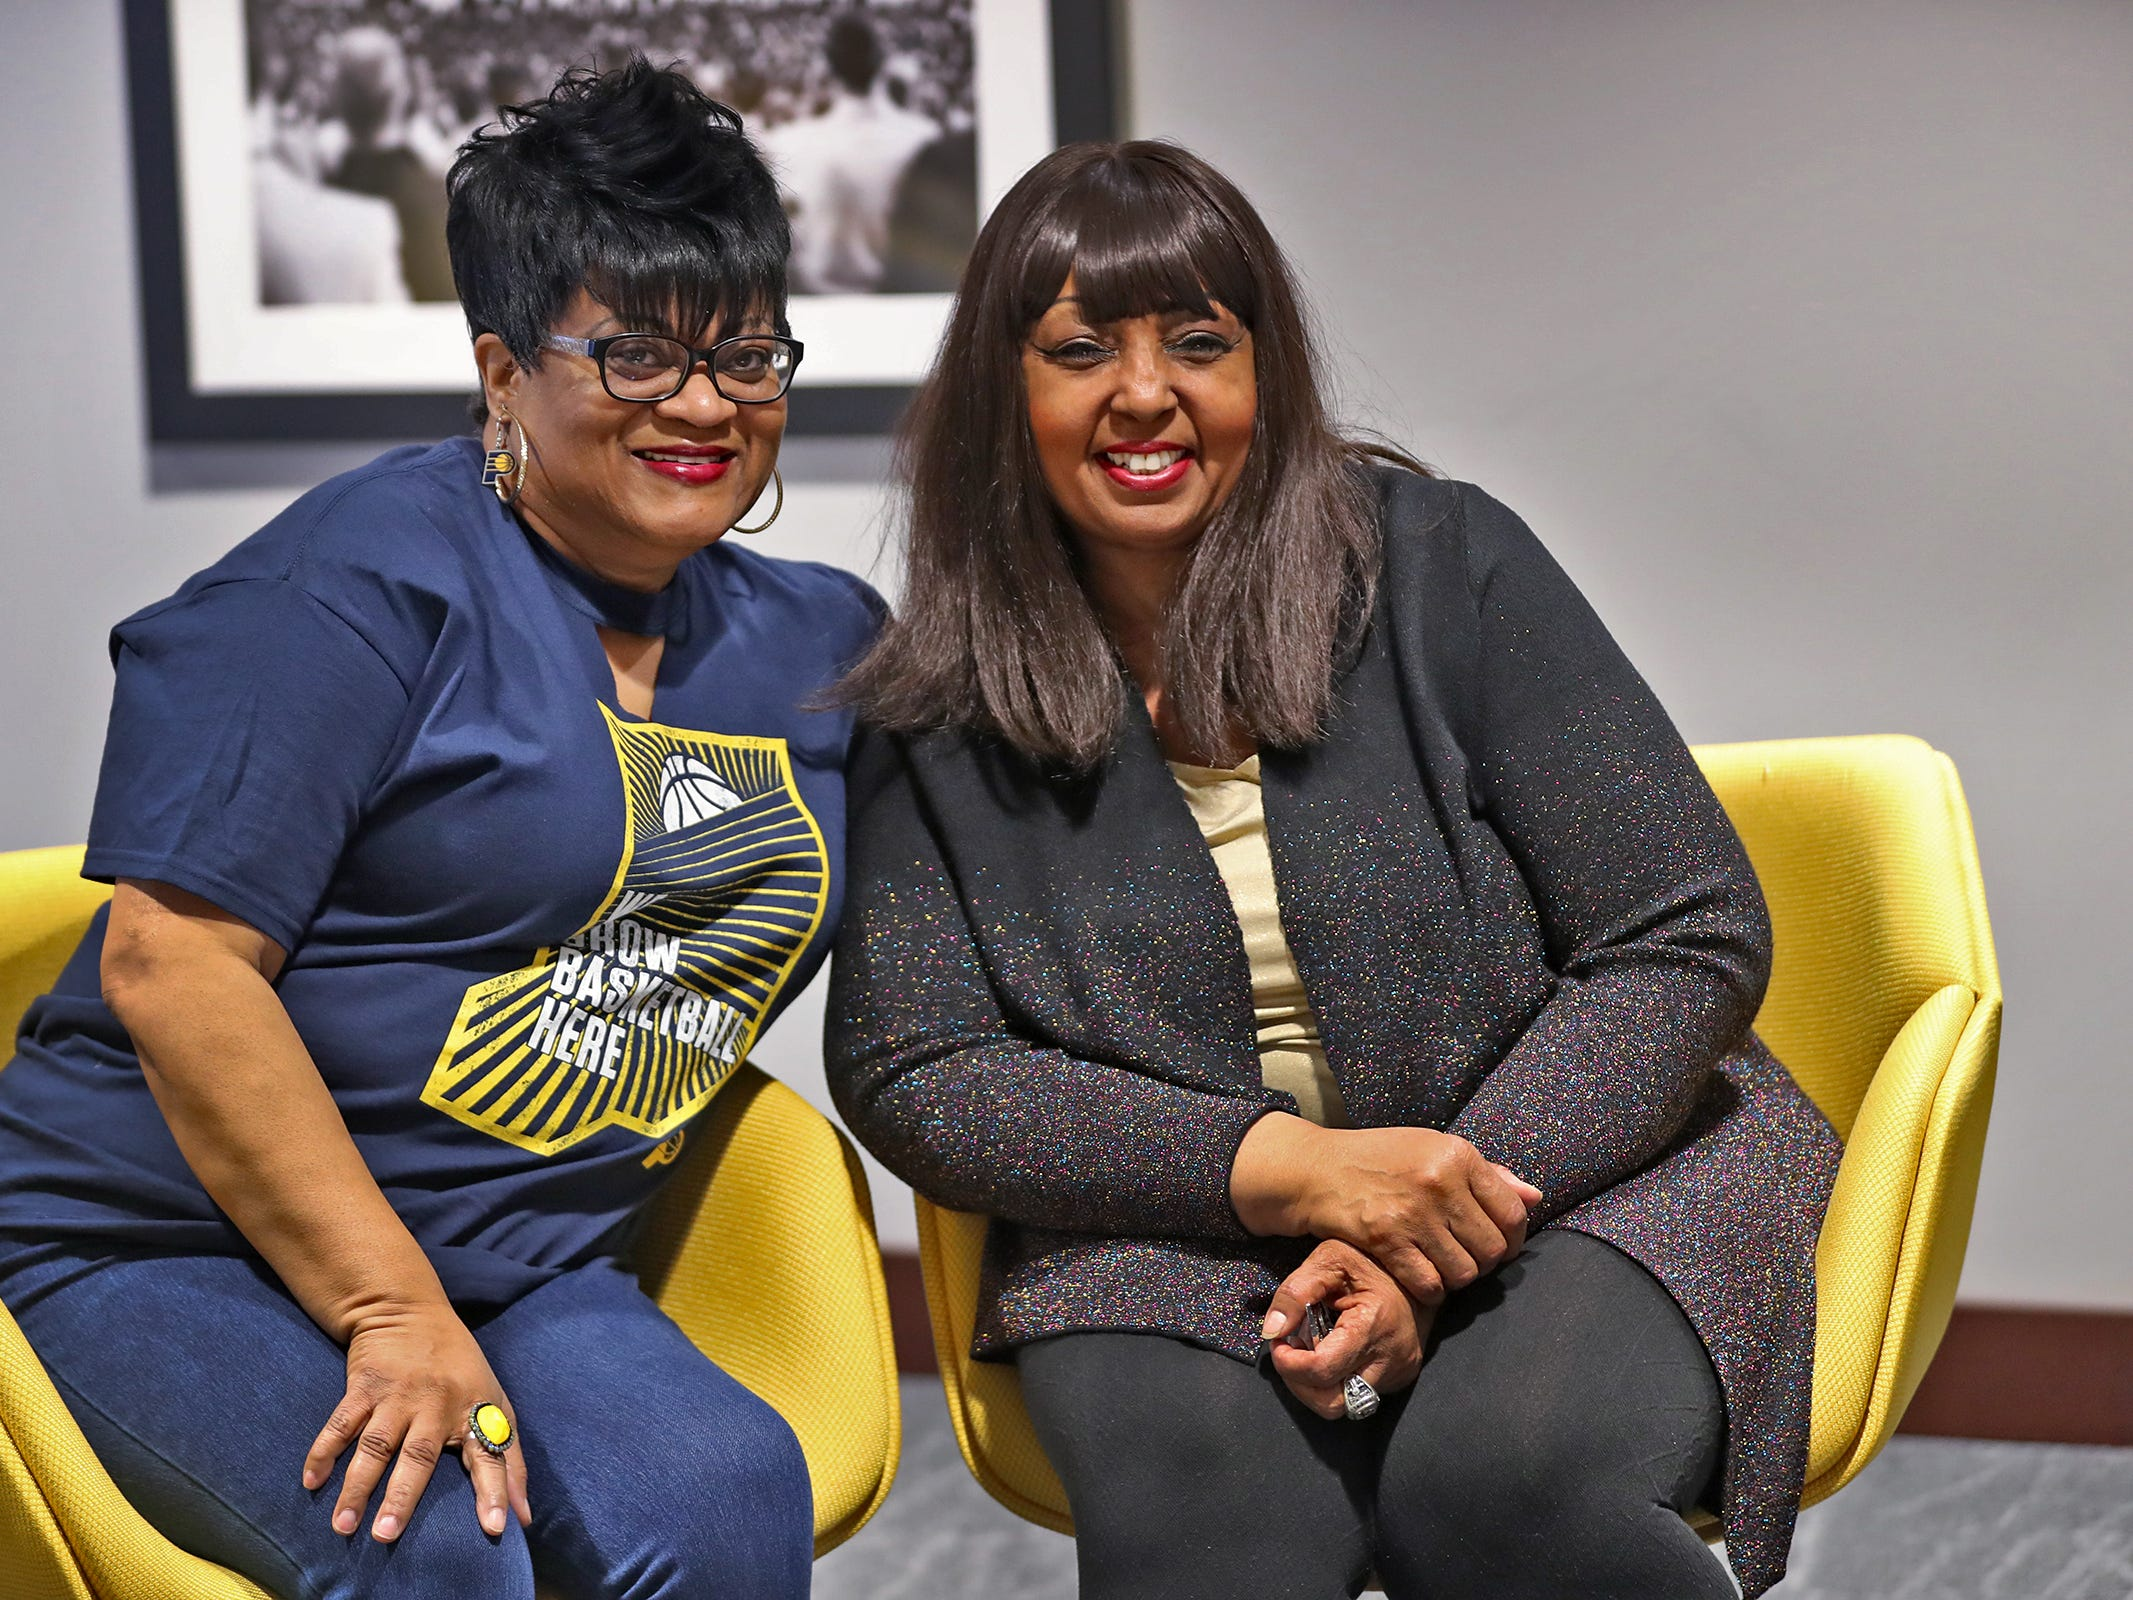 Pacers Sports & Entertainment Receptionist Janice Hinkle, left, and Guest Relations Coordinator Michele Hoosier work at Bankers Life Fieldhouse and are great friends. Friday, March 15, 2019.